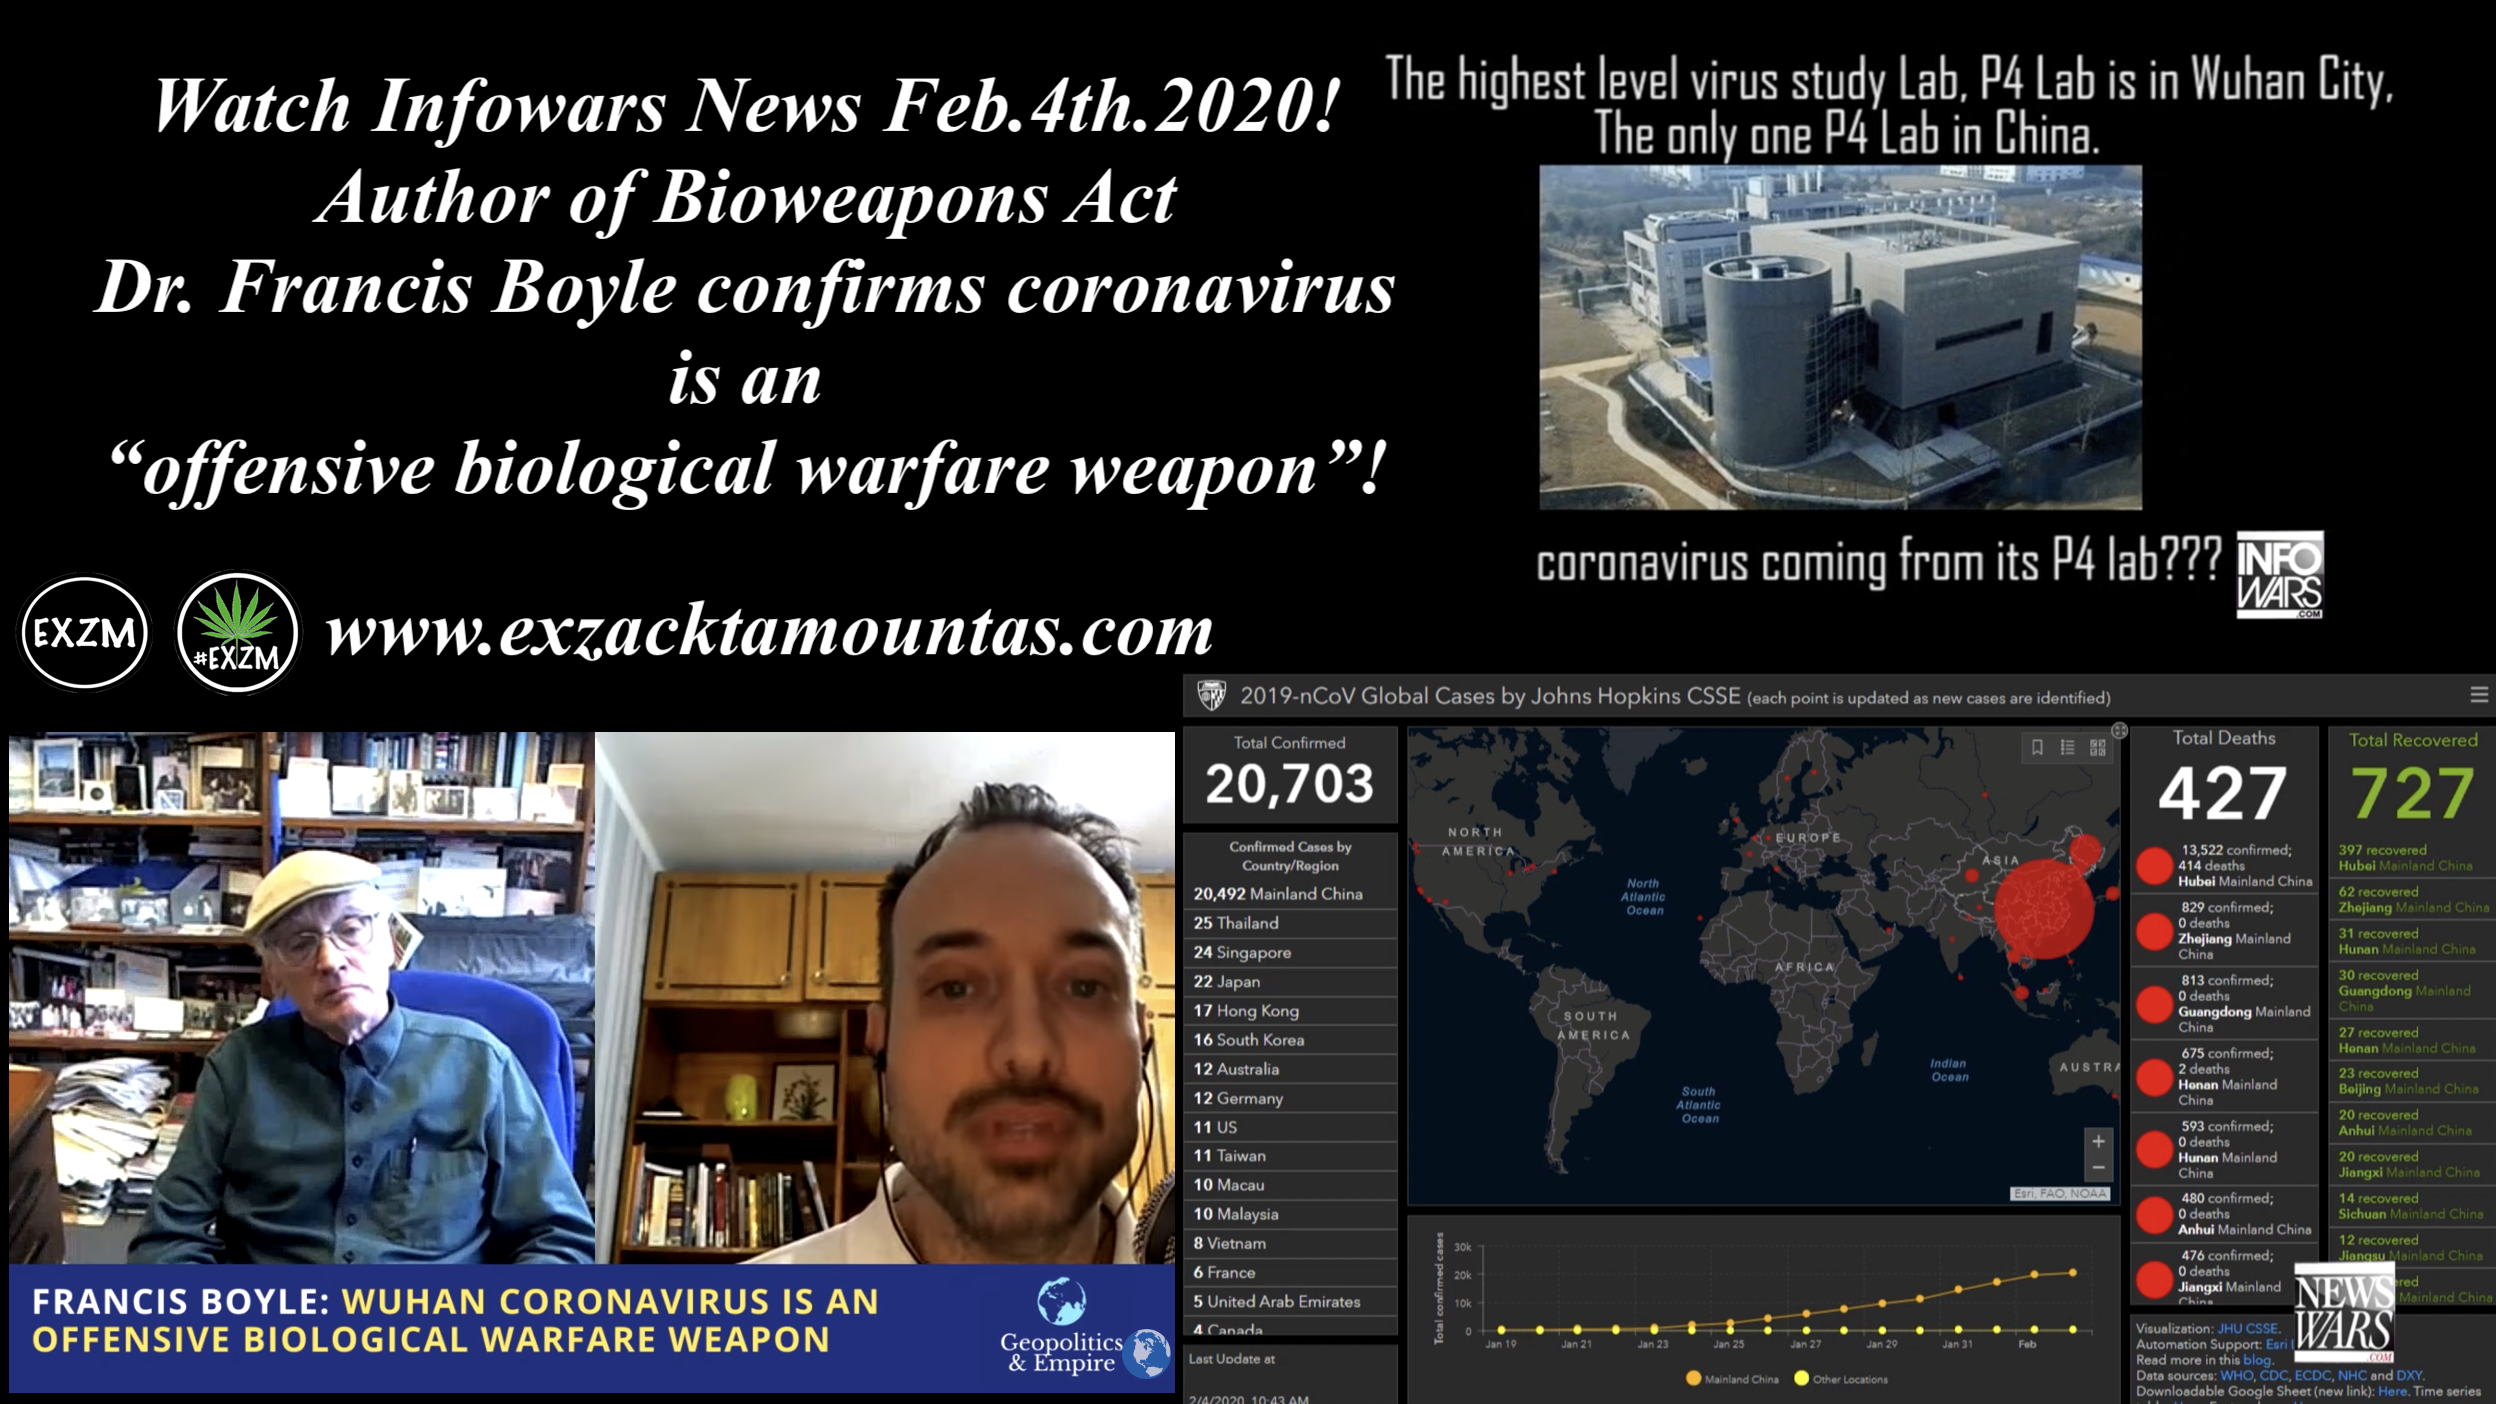 Infowars Confrims offensive biological warfare weapon 2 4 2020